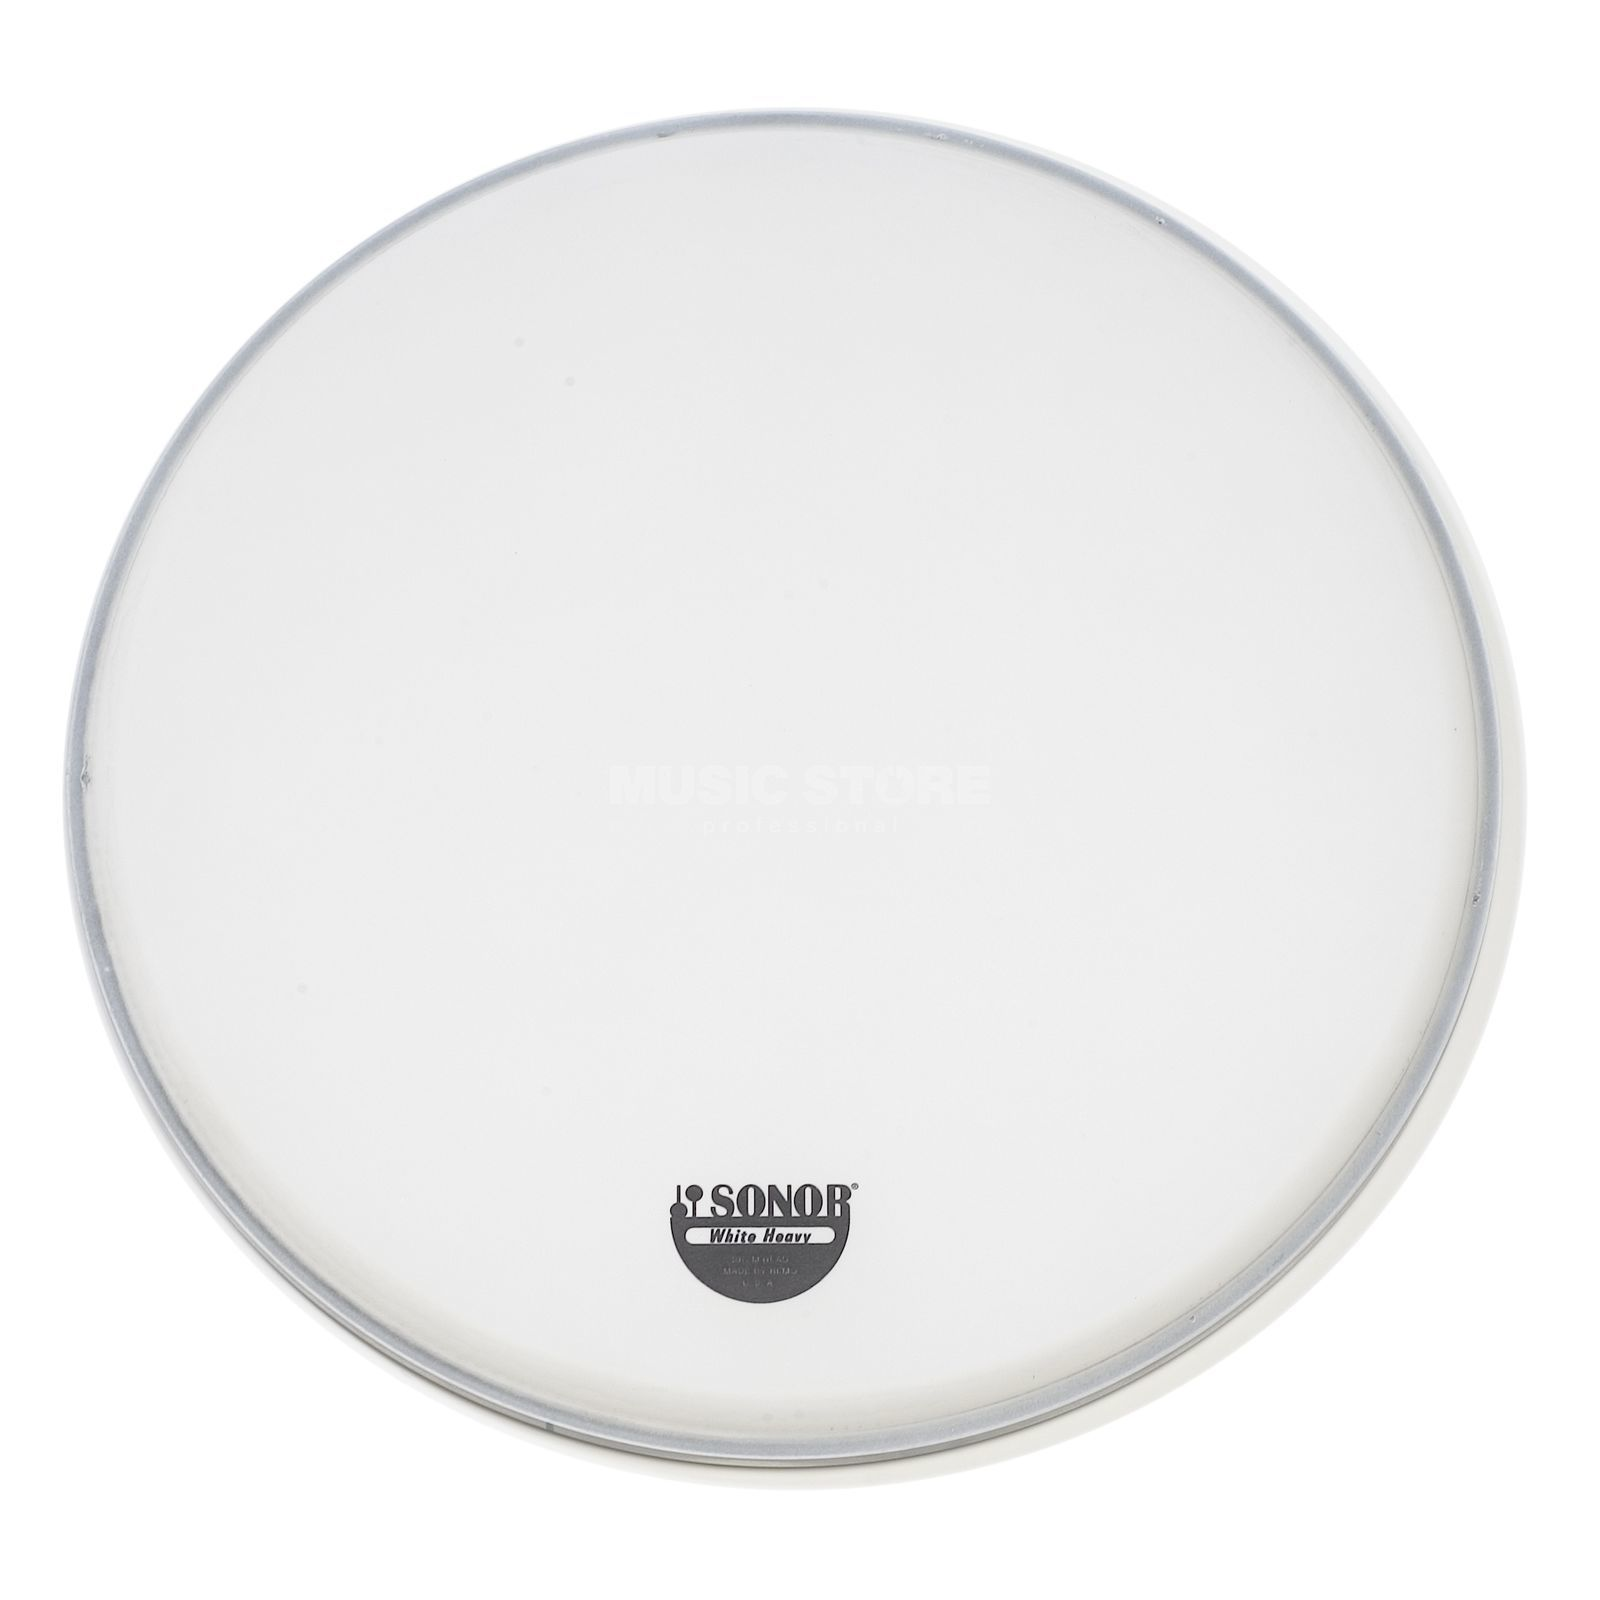 "Sonor Snare Drum Head WH 14, 14"", Marching, coated white, 2-ply Produktbillede"